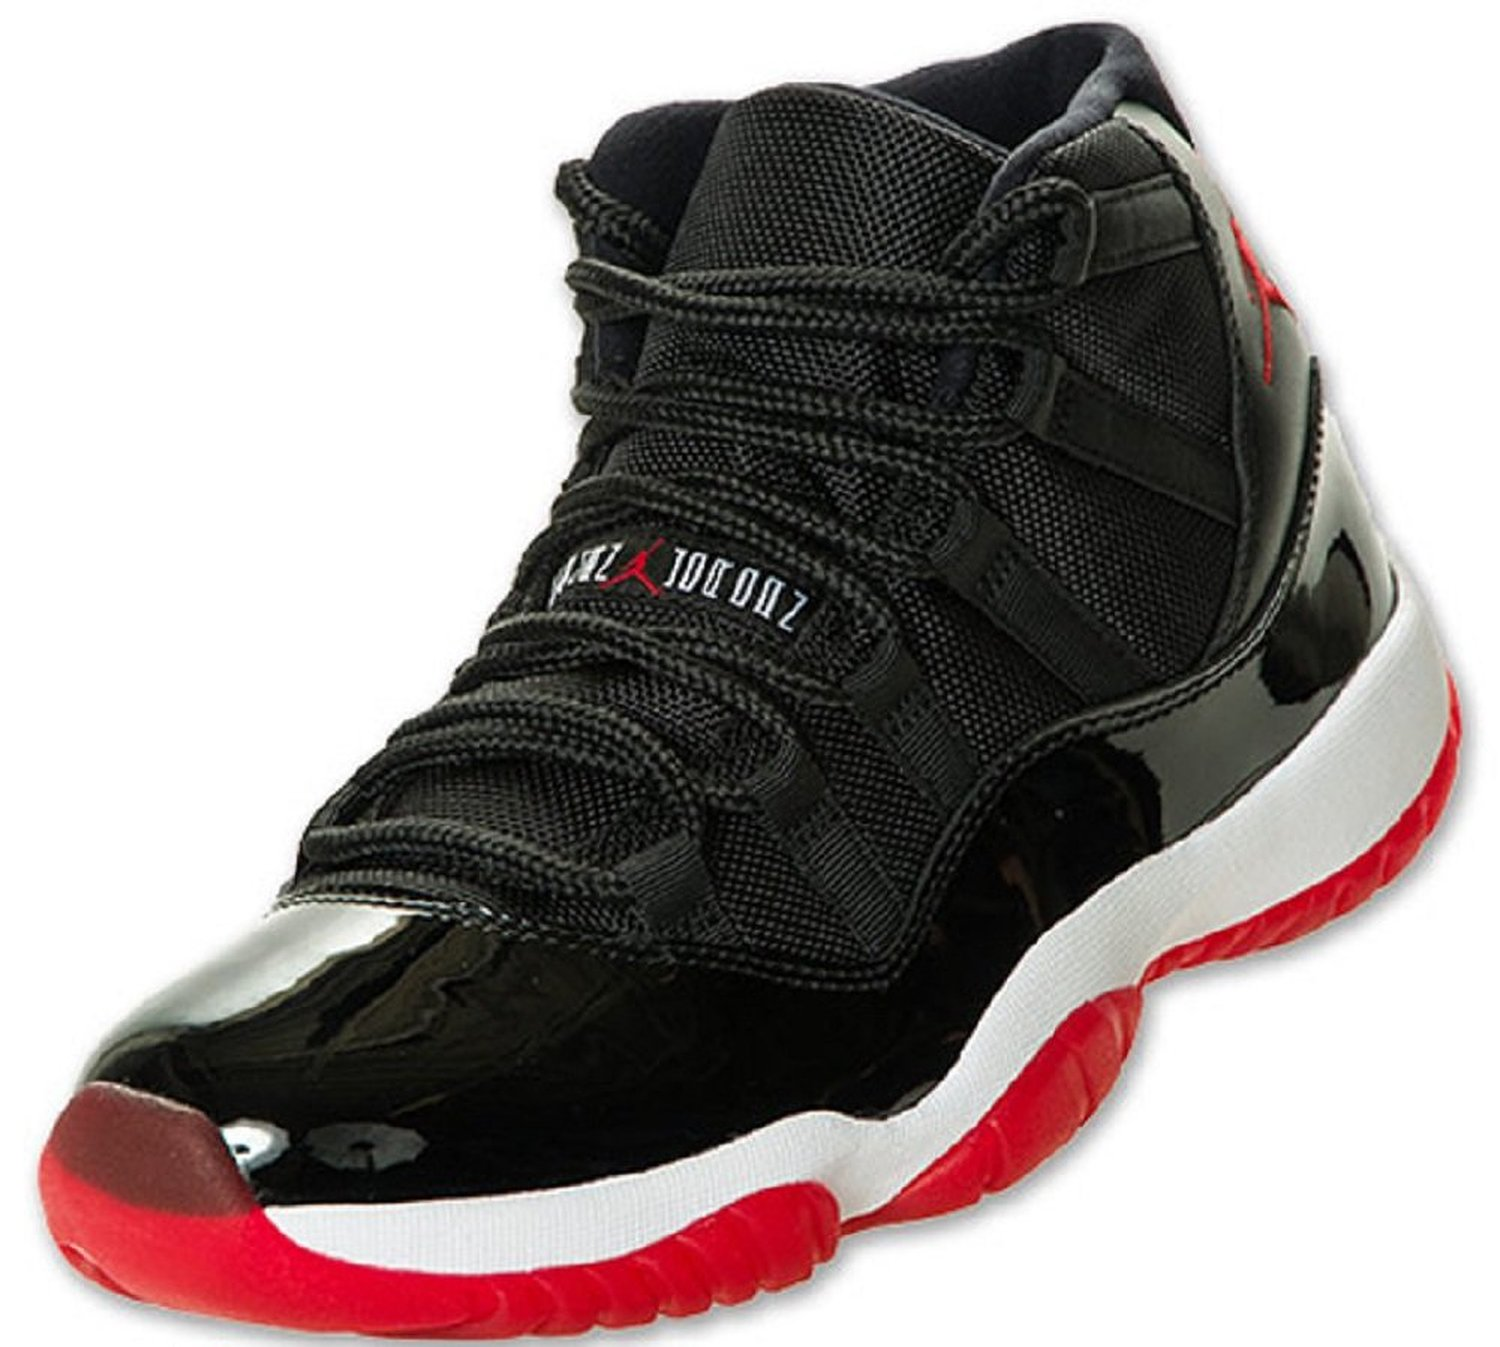 Nike Air Jordan 11 Red White Mens Basketball Shoes